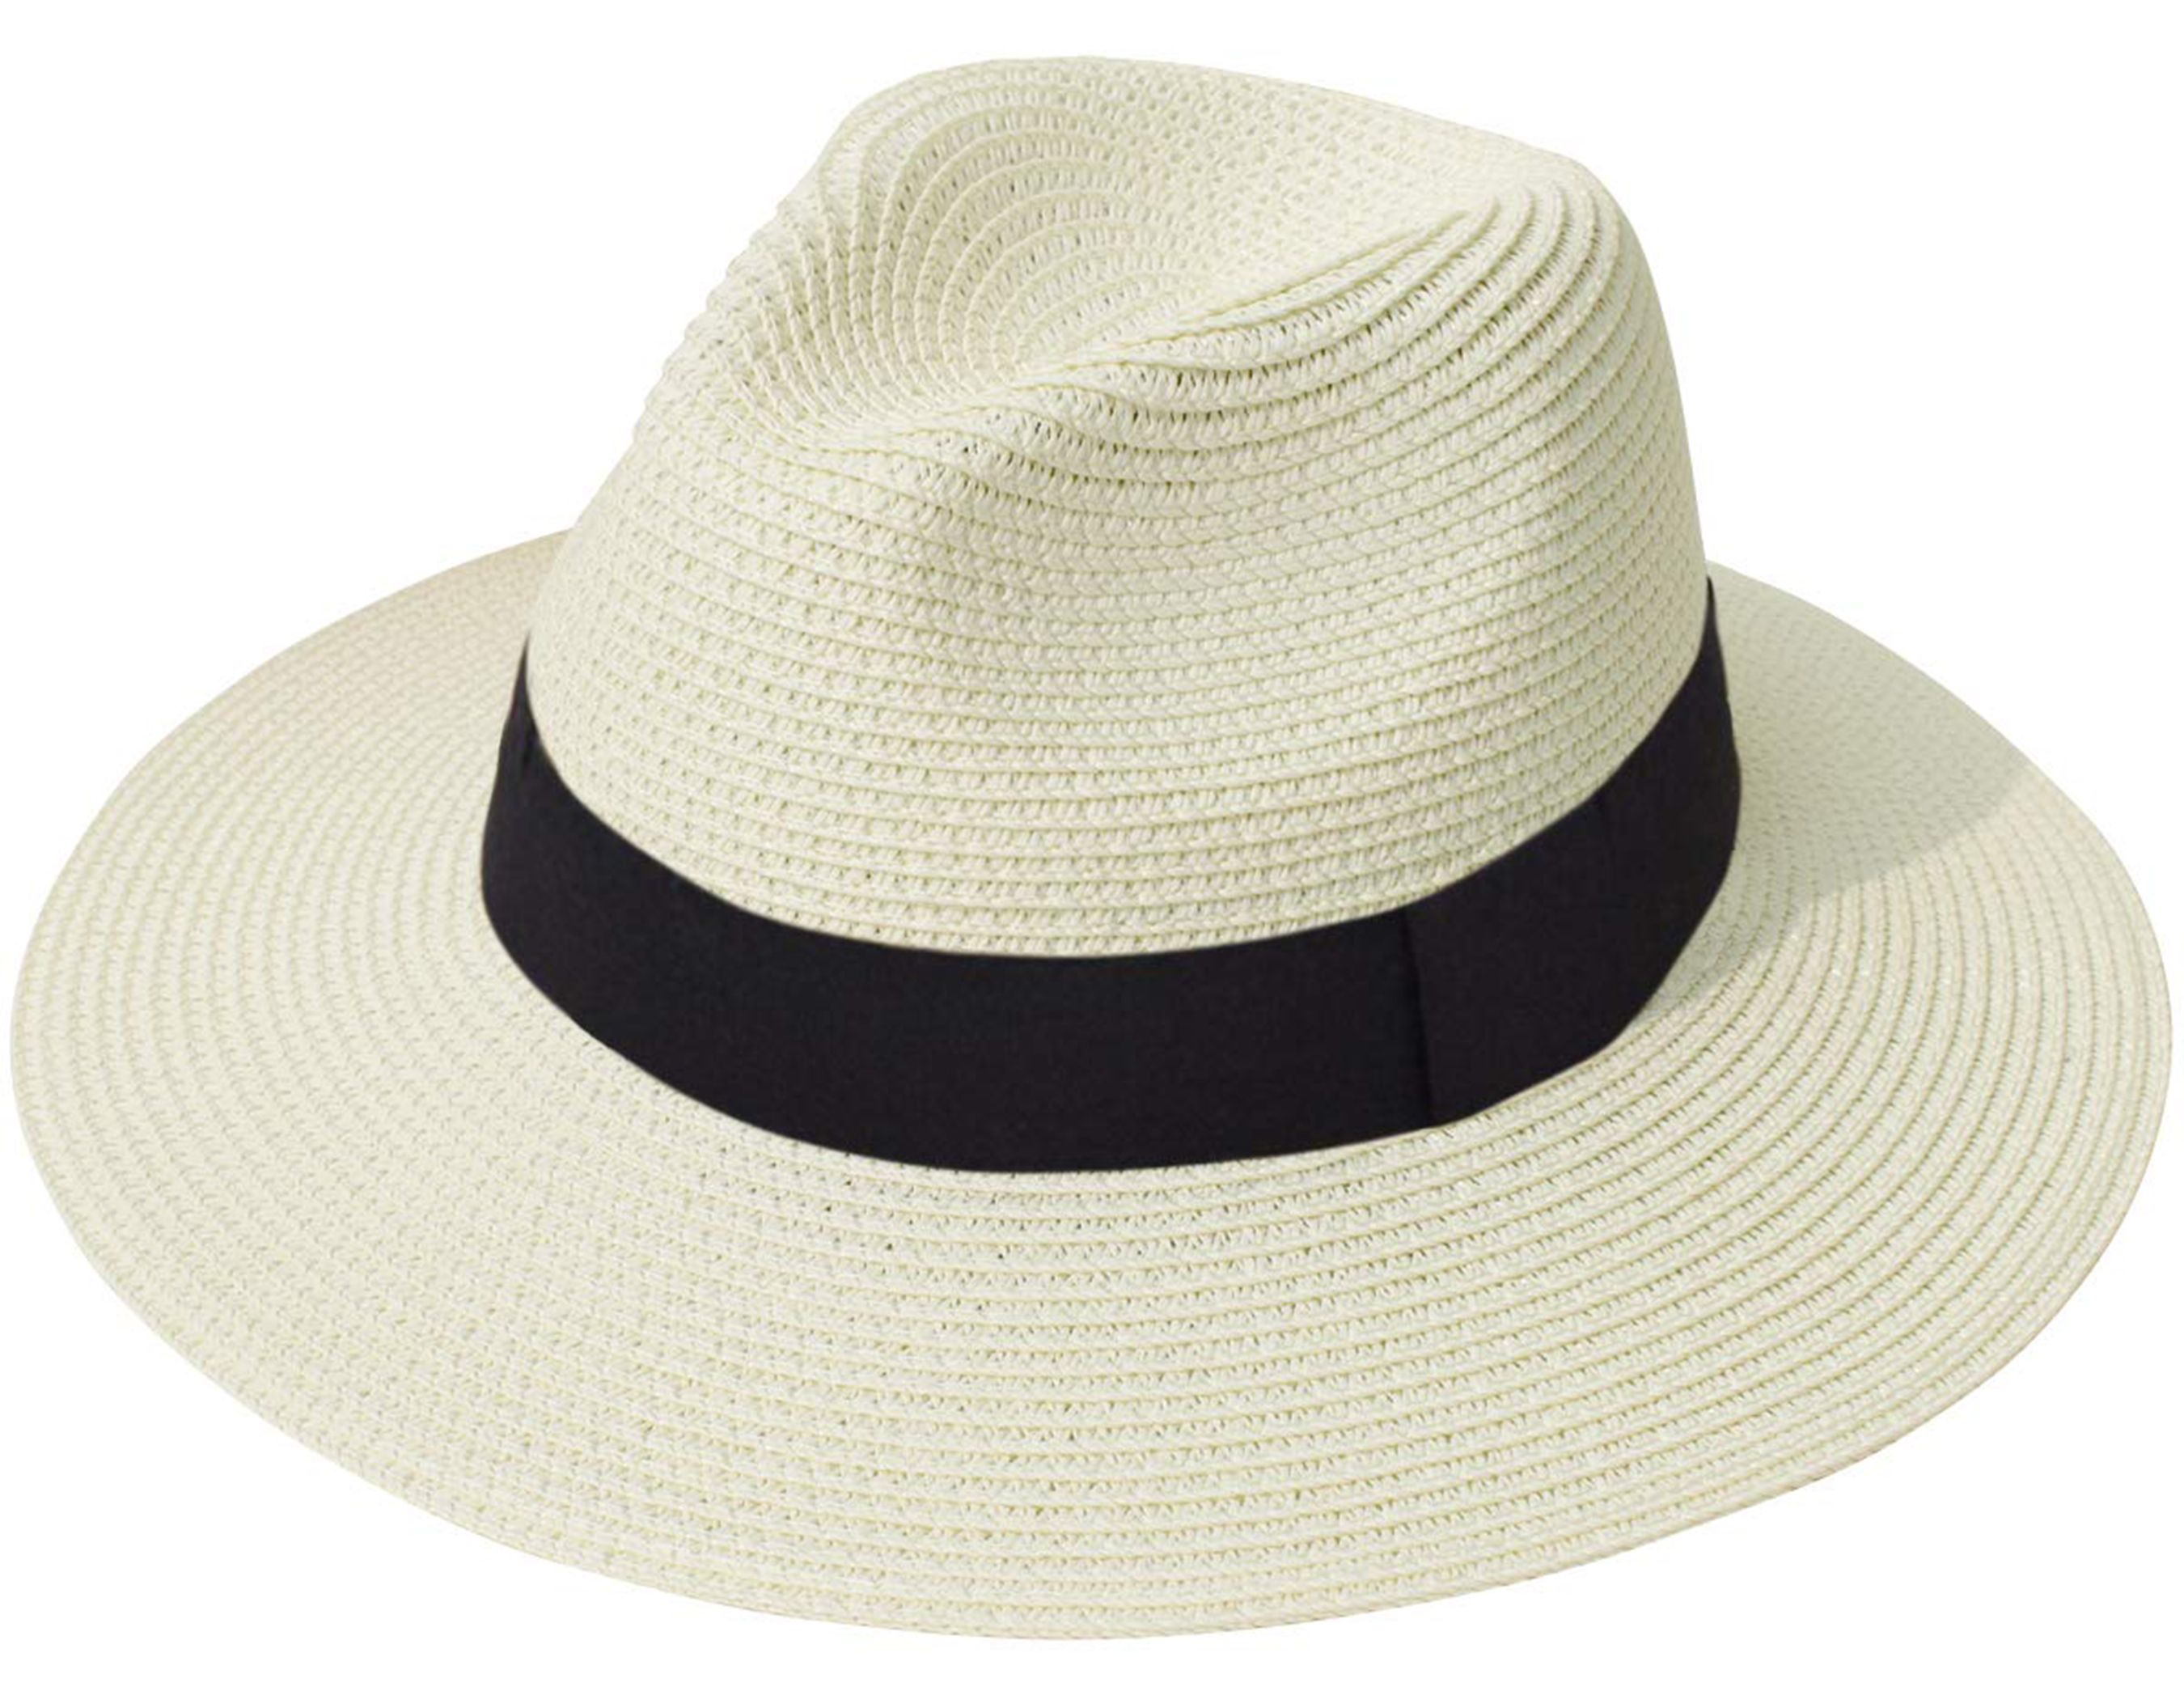 This Adorable Panama Hat Looks Nearly Identical To The One Meghan Markle Loves And It S Only 16 Fedora Beach Beach Sun Hat Sun Hats